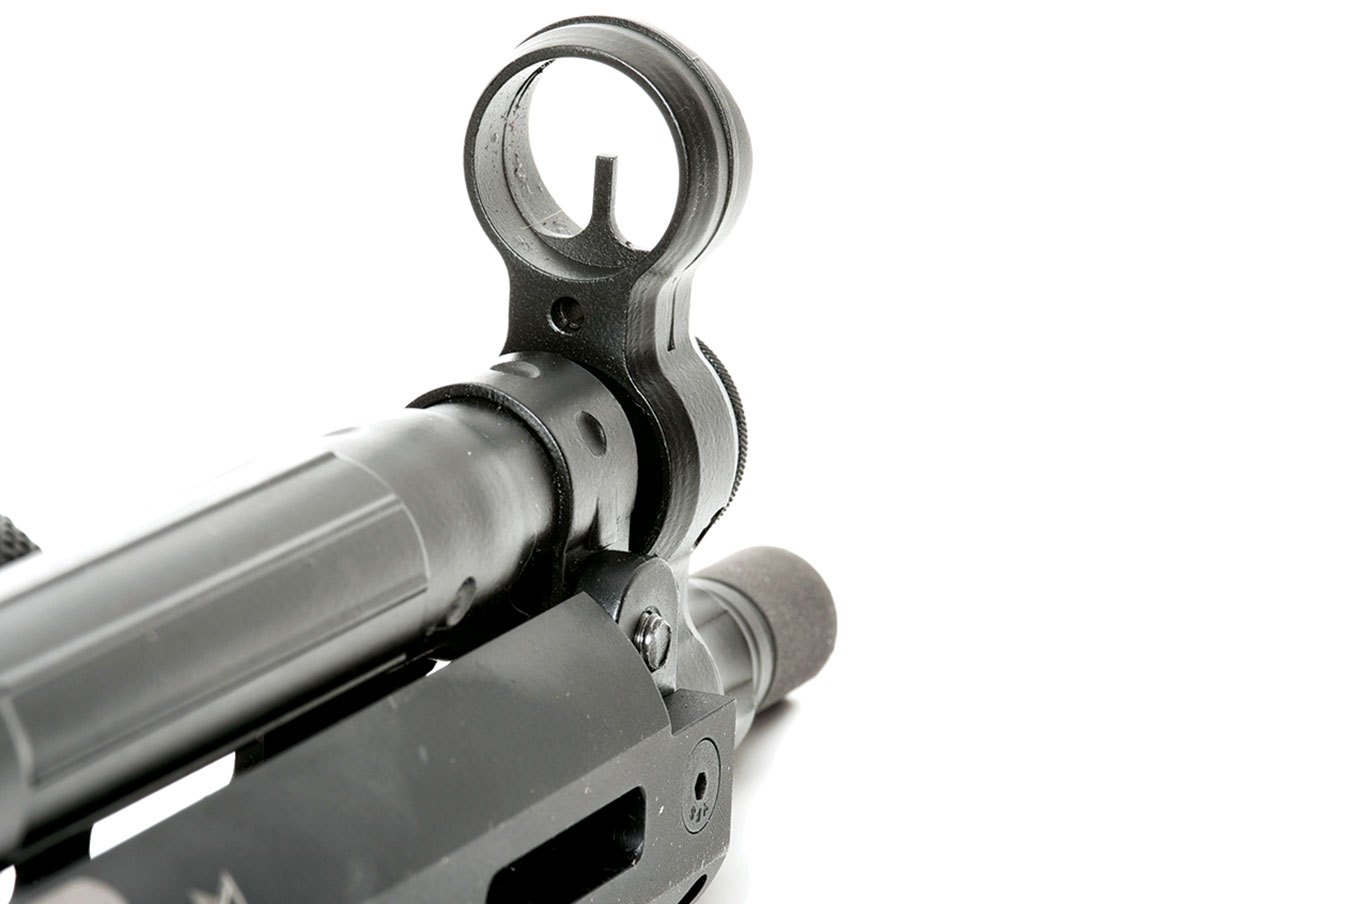 The front sight is a post centered inside a large protective ring.